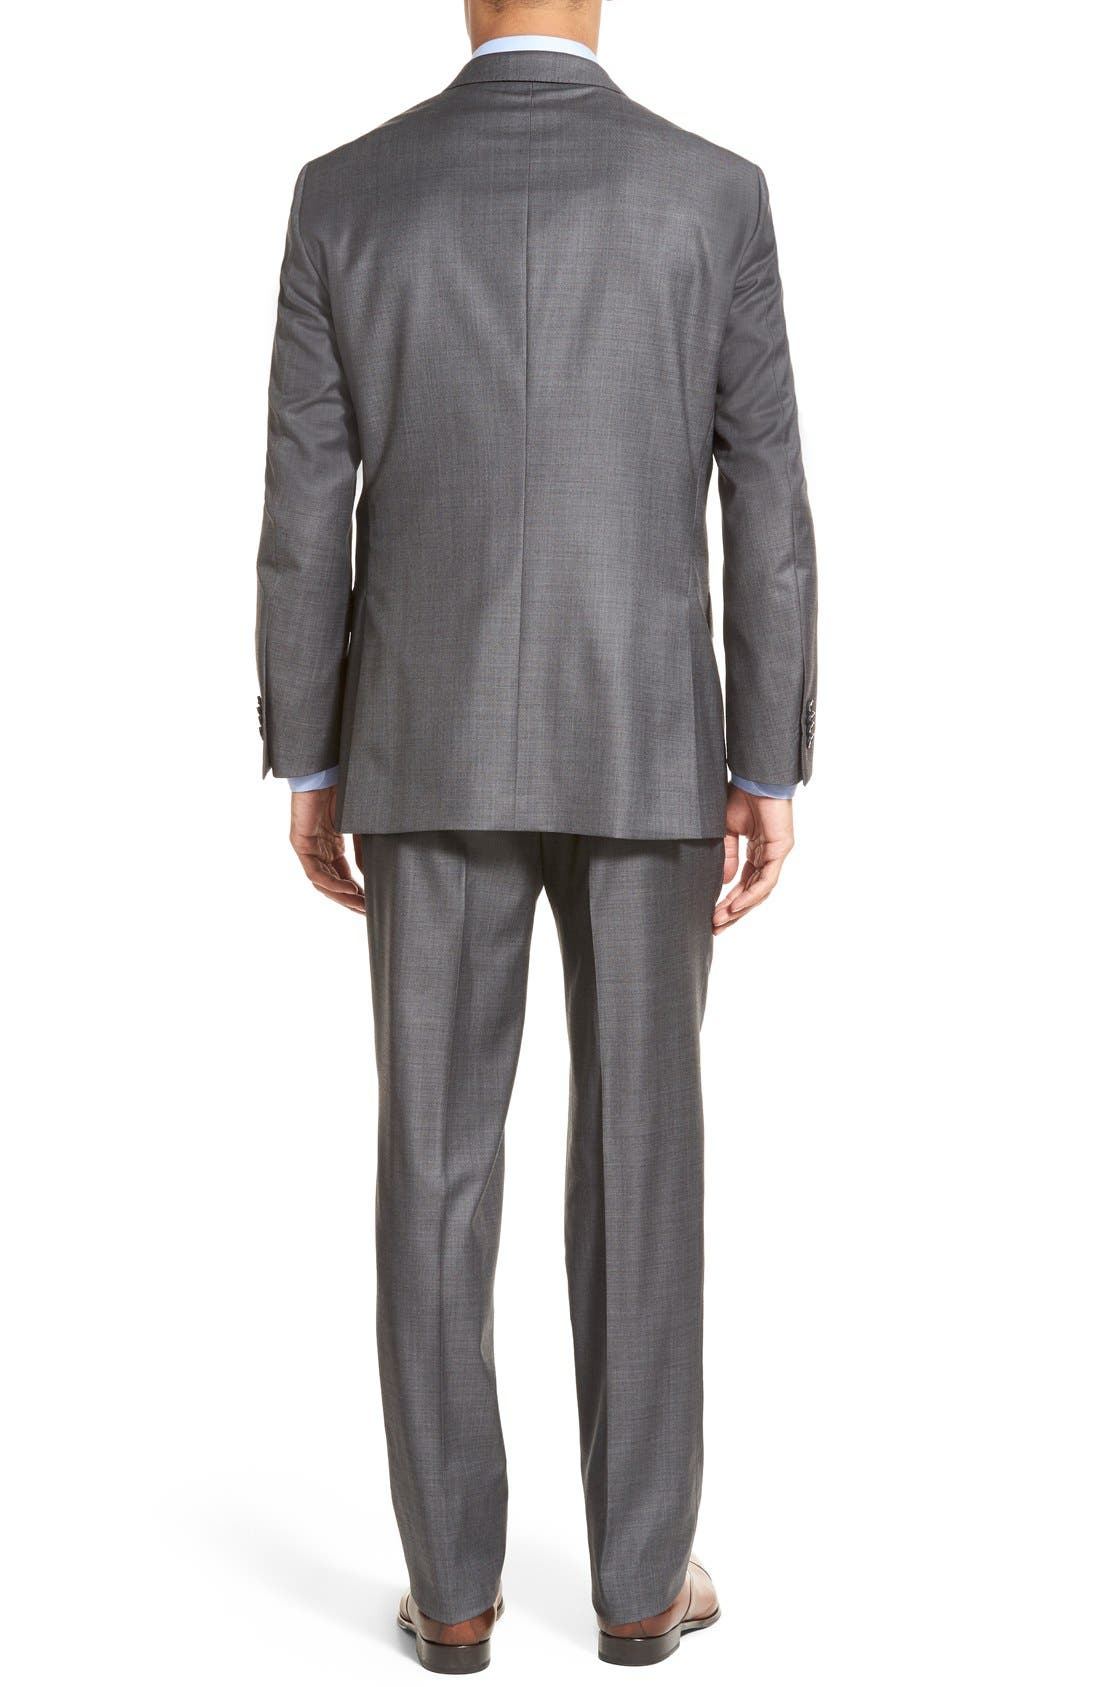 PETER MILLAR, Classic Fit Solid Wool Suit, Alternate thumbnail 4, color, CHARCOAL